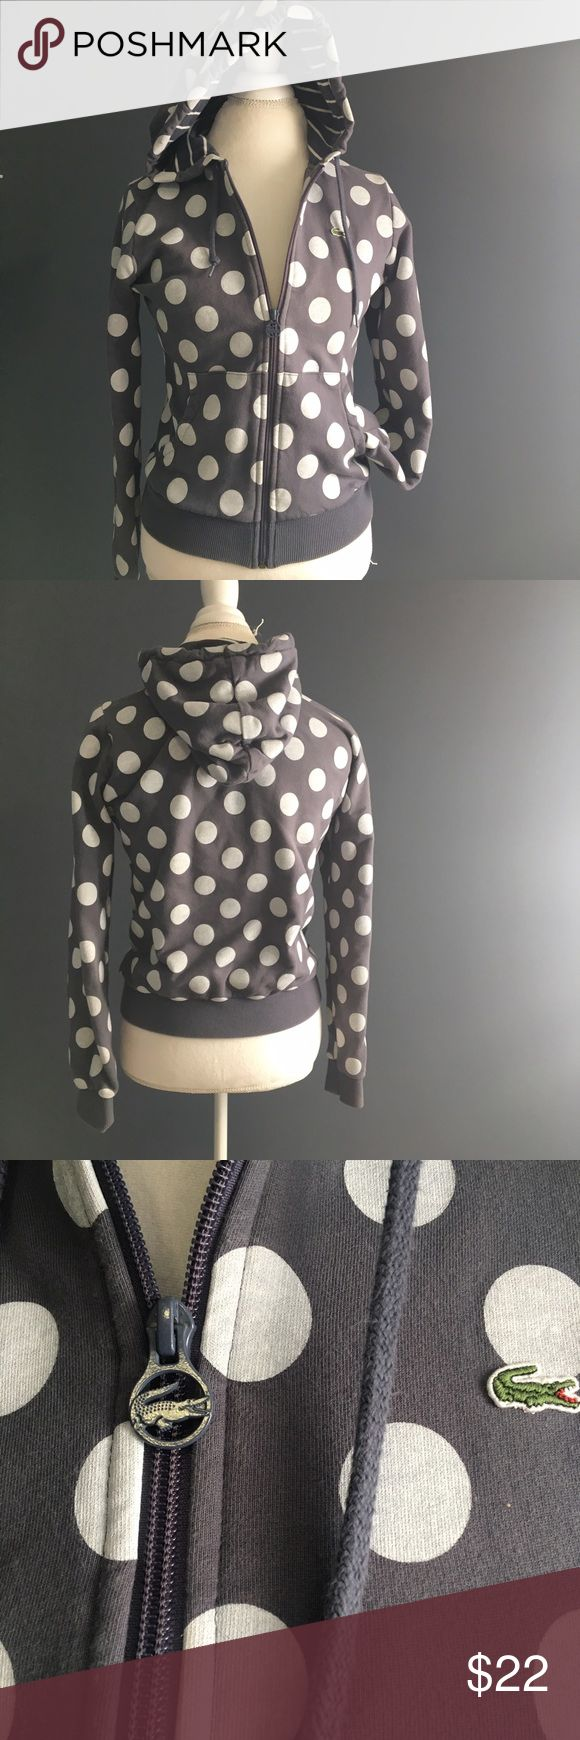 Lacoste Polka Dot Zip Up Hoody Size 40 Women's Lacoste gray hoody with white polka dots size 40/large. But fits like a small/medium. Great used condition. Only flaw is the inner armpits have been bleached by deodorant. It is not visible from the outside. (See photos). Otherwise it is in excellent condition. Lacoste Tops Sweatshirts & Hoodies